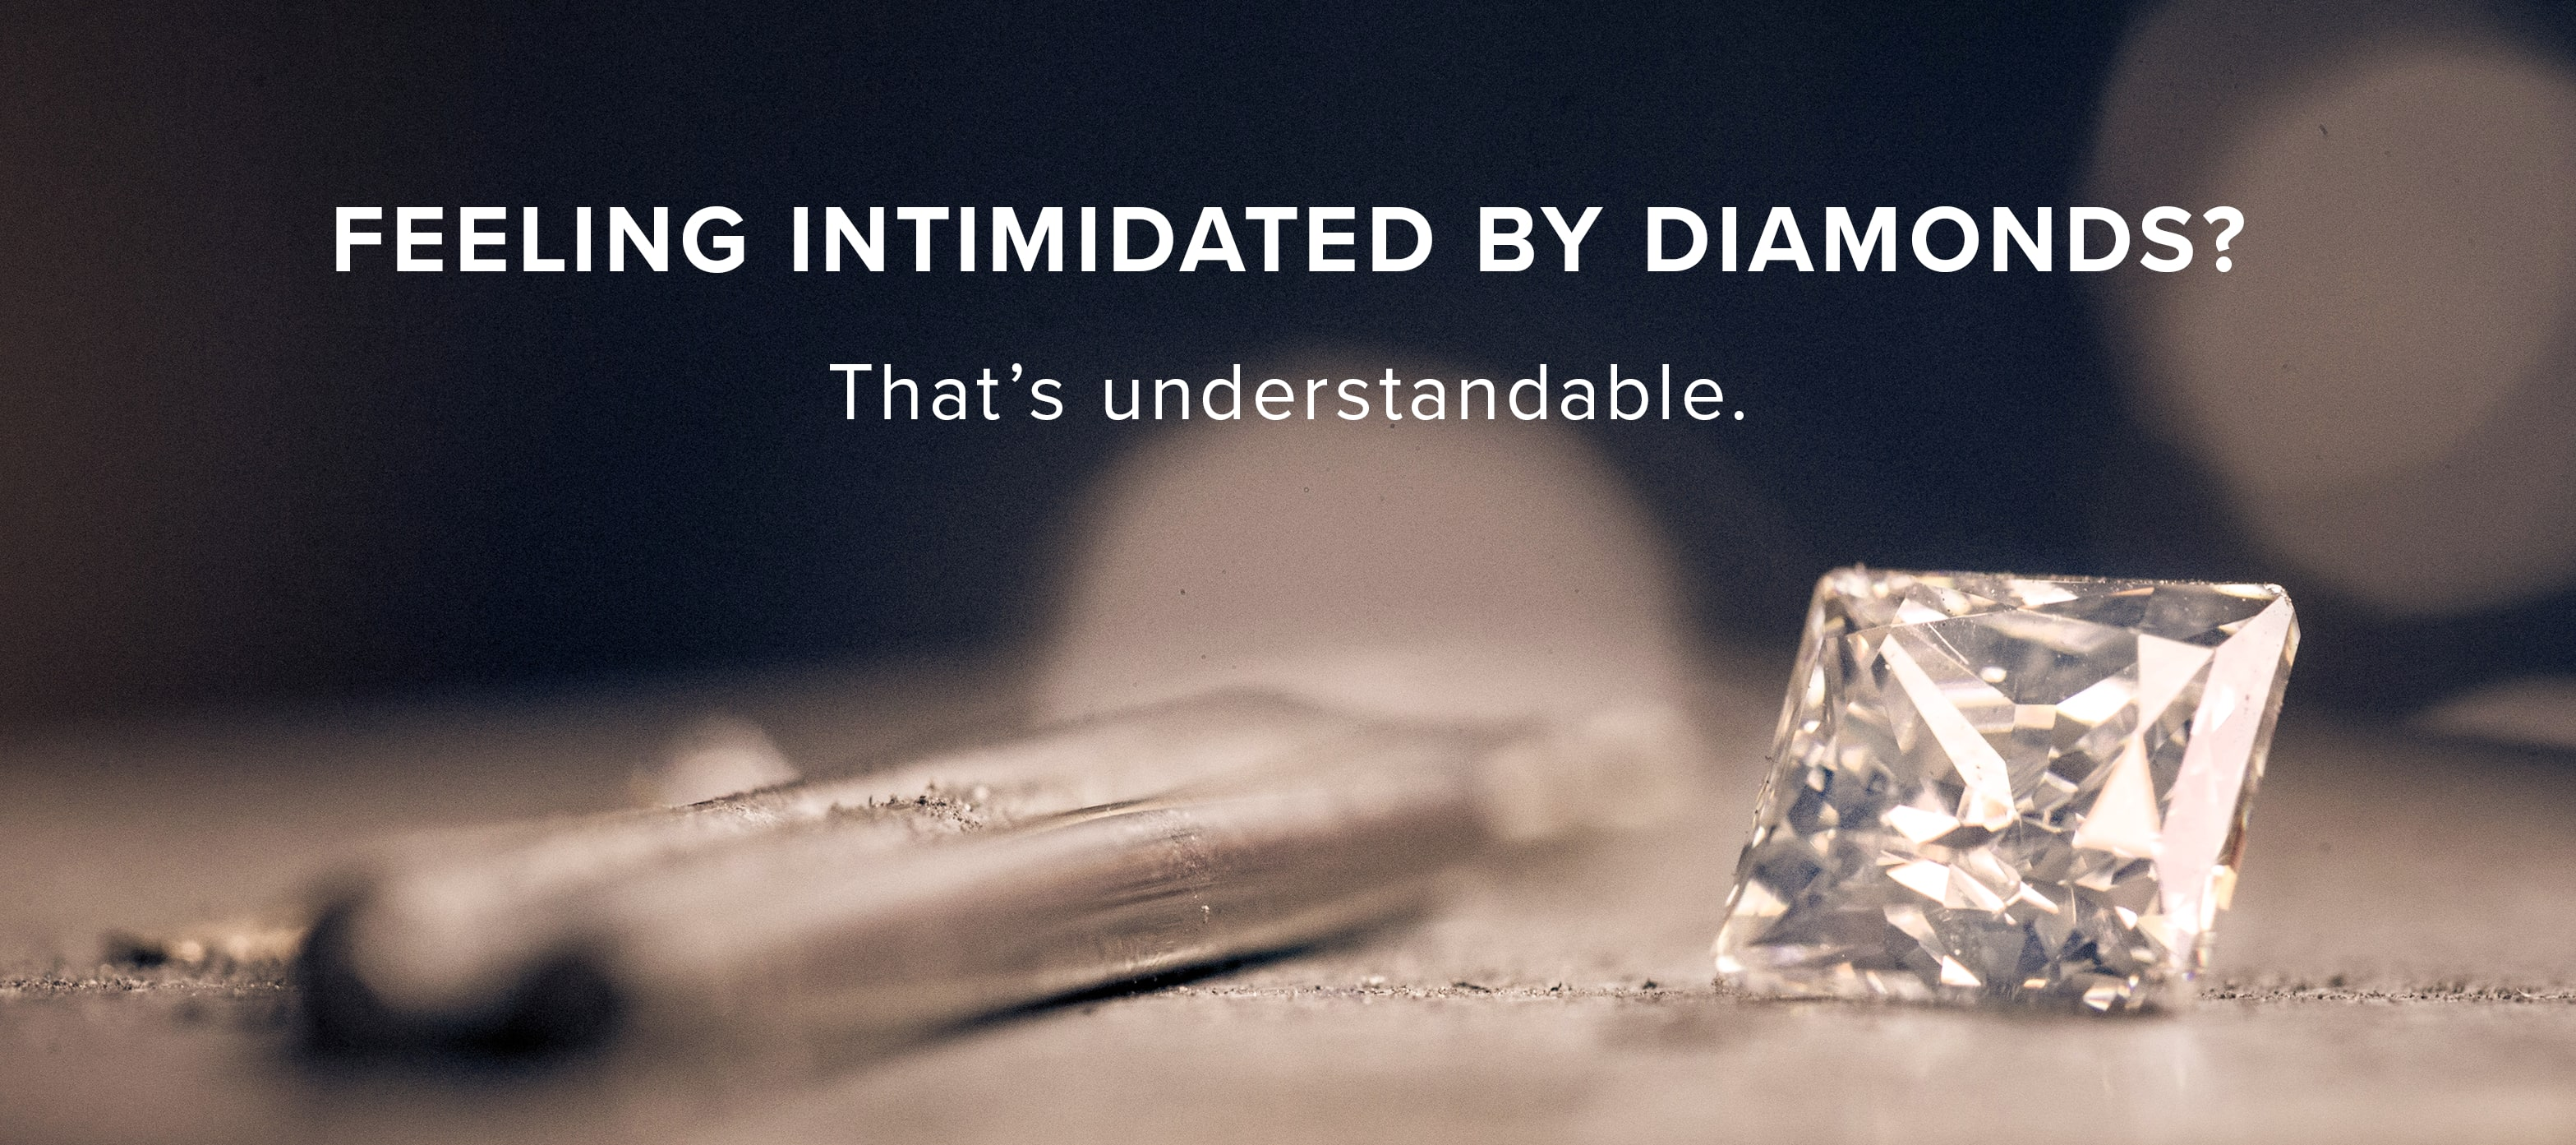 Feeling intimidated by diamonds? That's understandable.